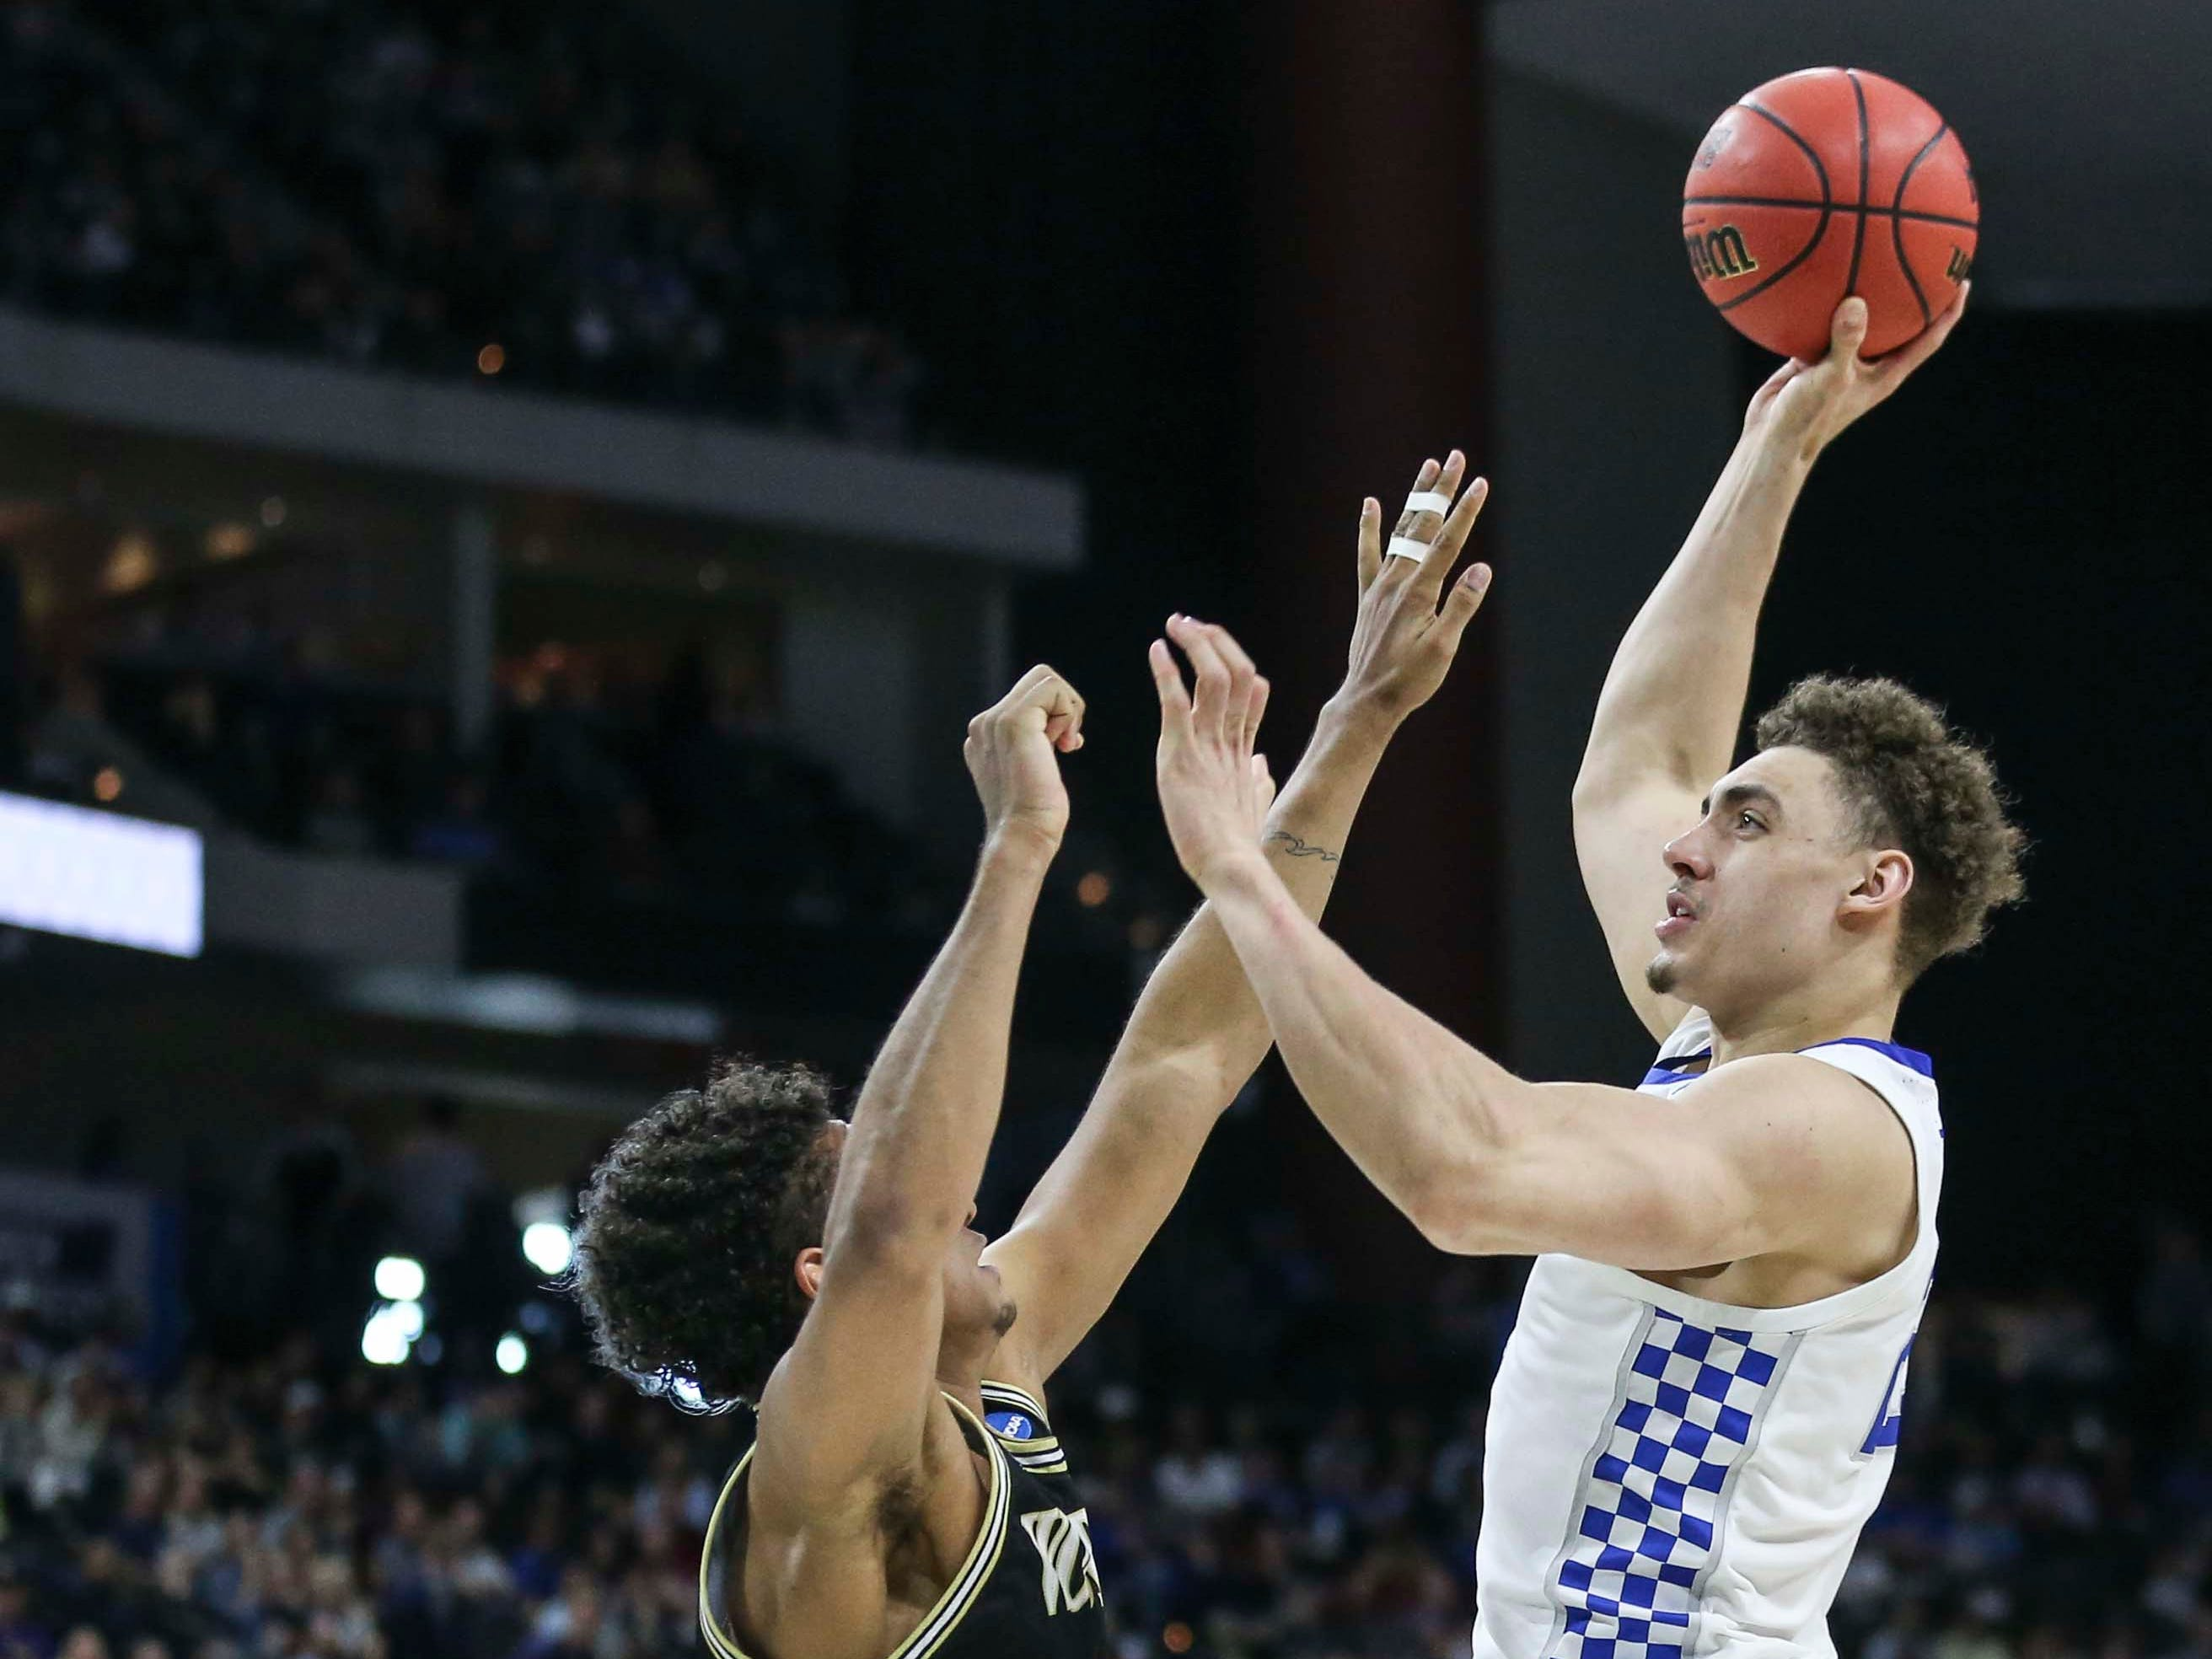 Kentucky's Reid Travis scored 14 points with 11 rebounds as he helped lead the Wildcats' 62-56 win in the second round game of the 2019 NCAA tournament in Jacksonville, Fla. March 23, 2019